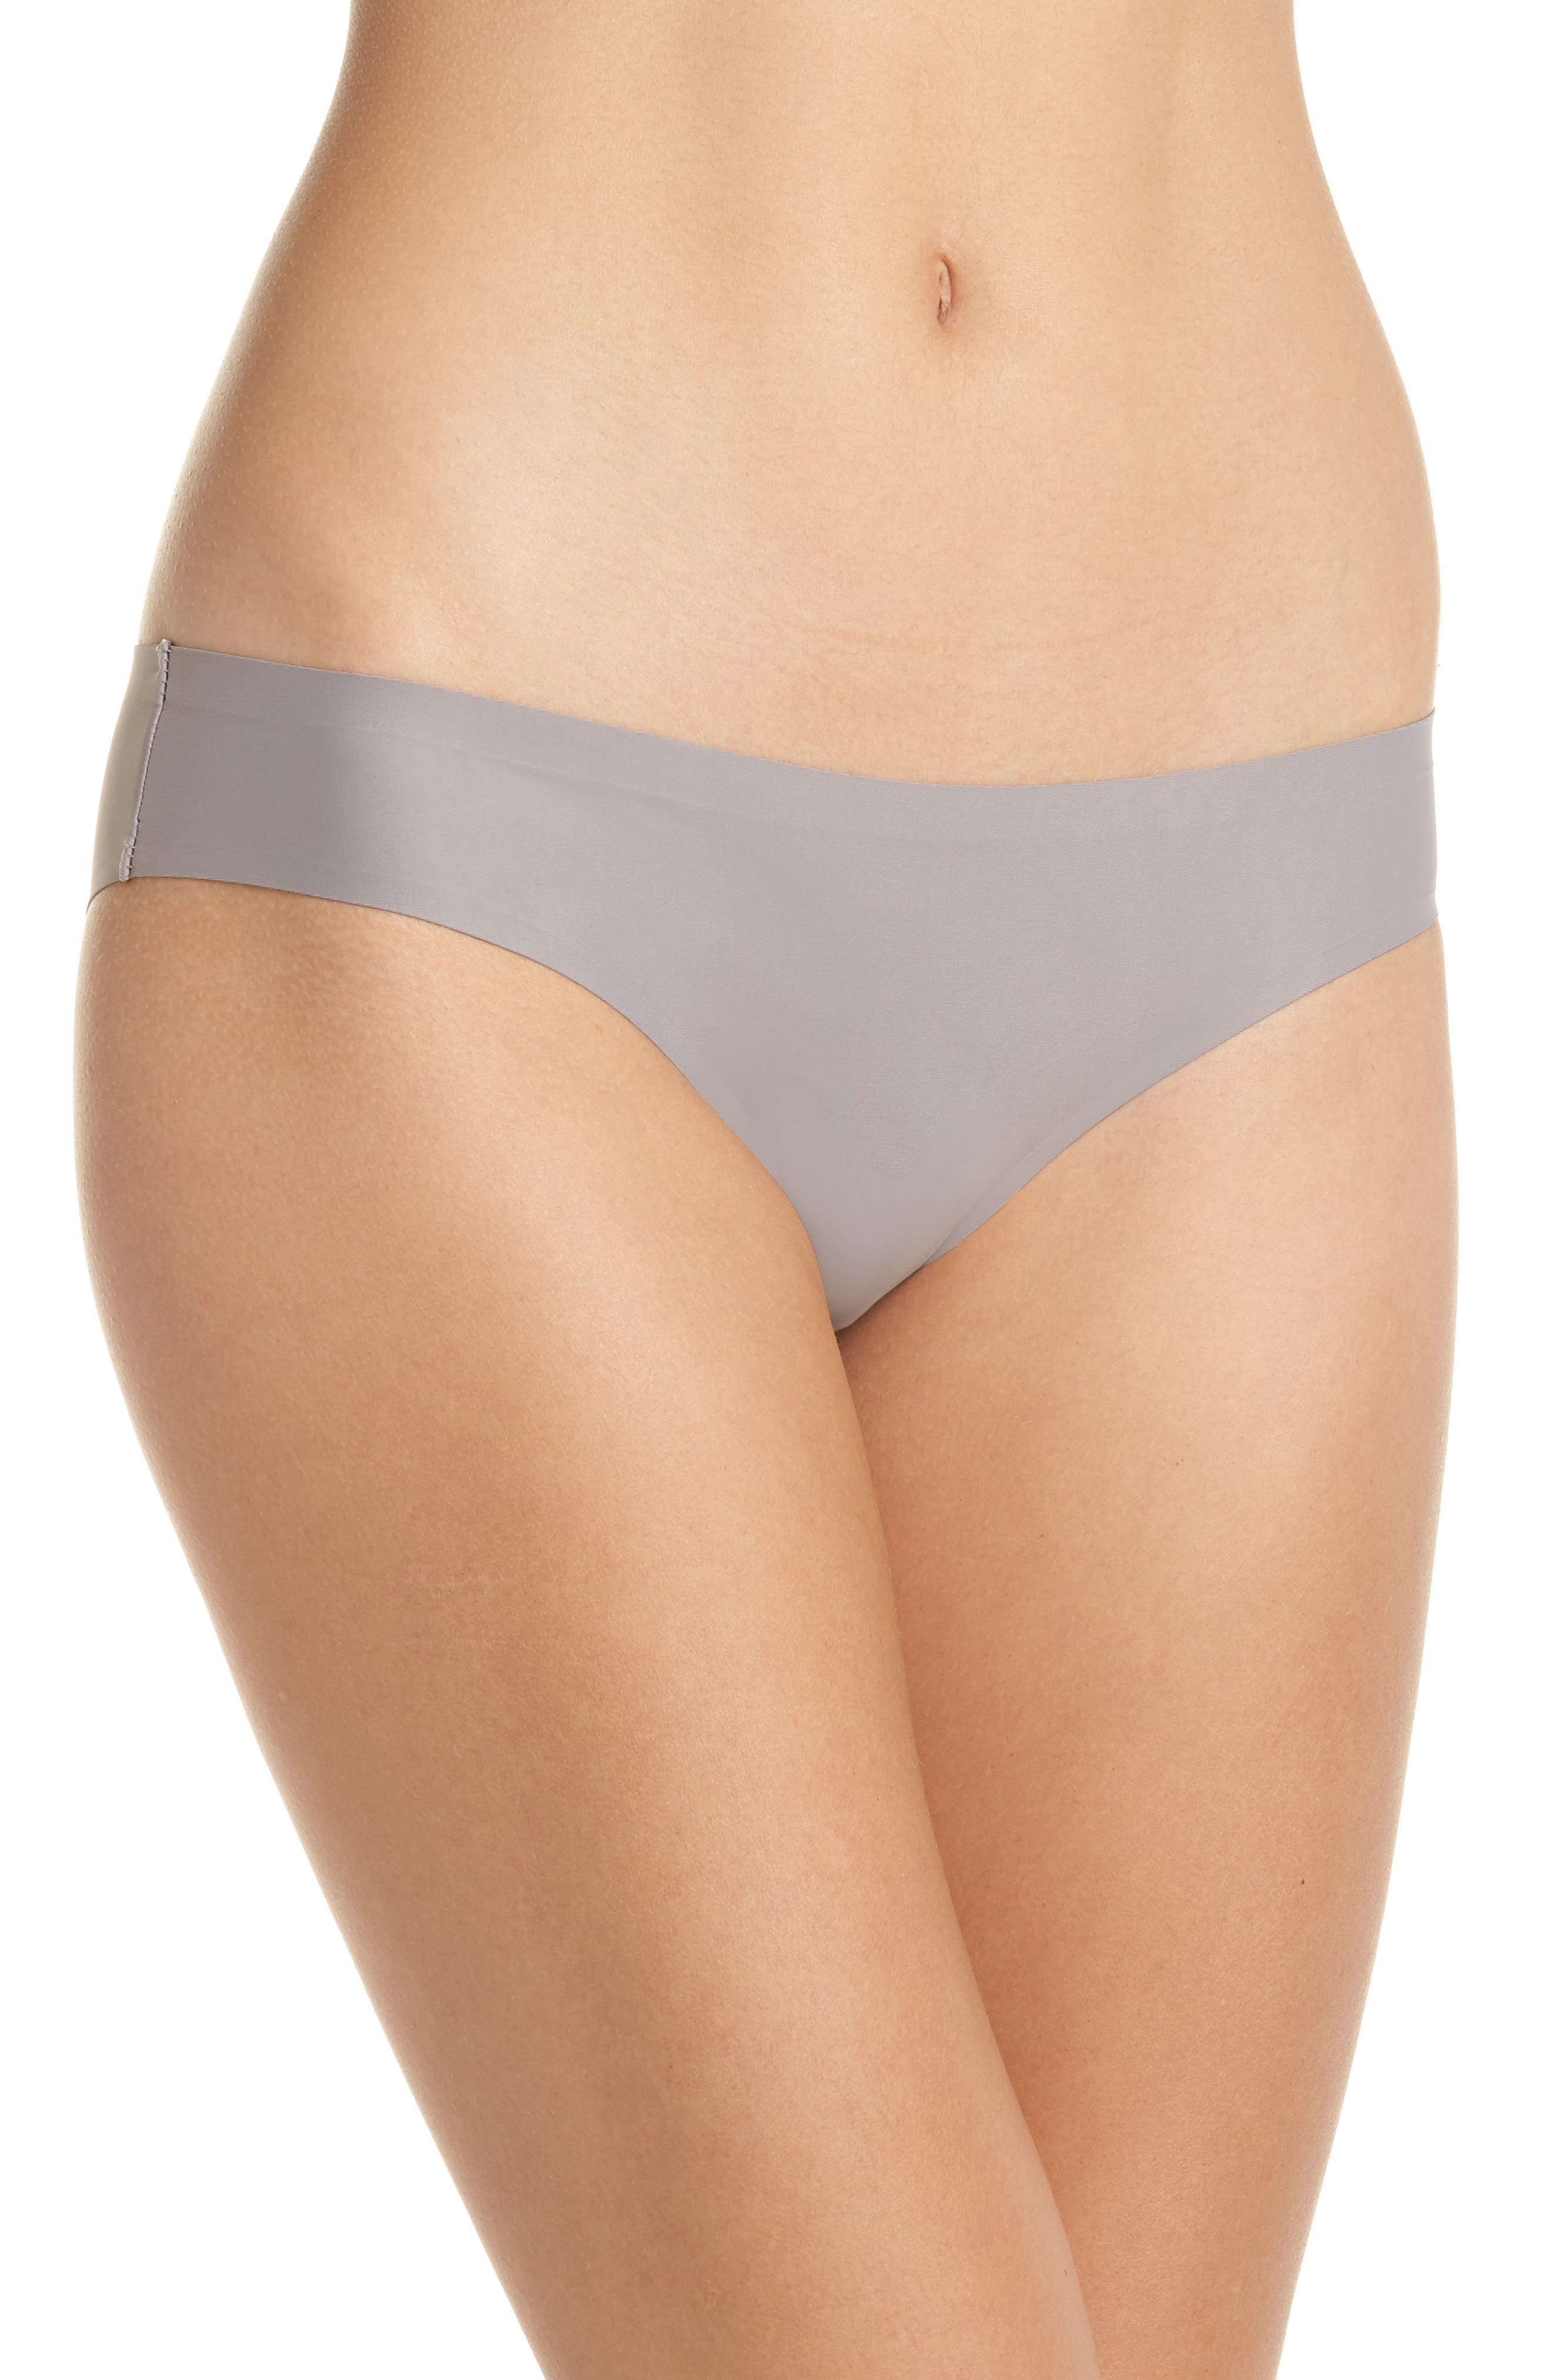 Skinz Hipster Briefs,                         Main,                         color, SHADOW